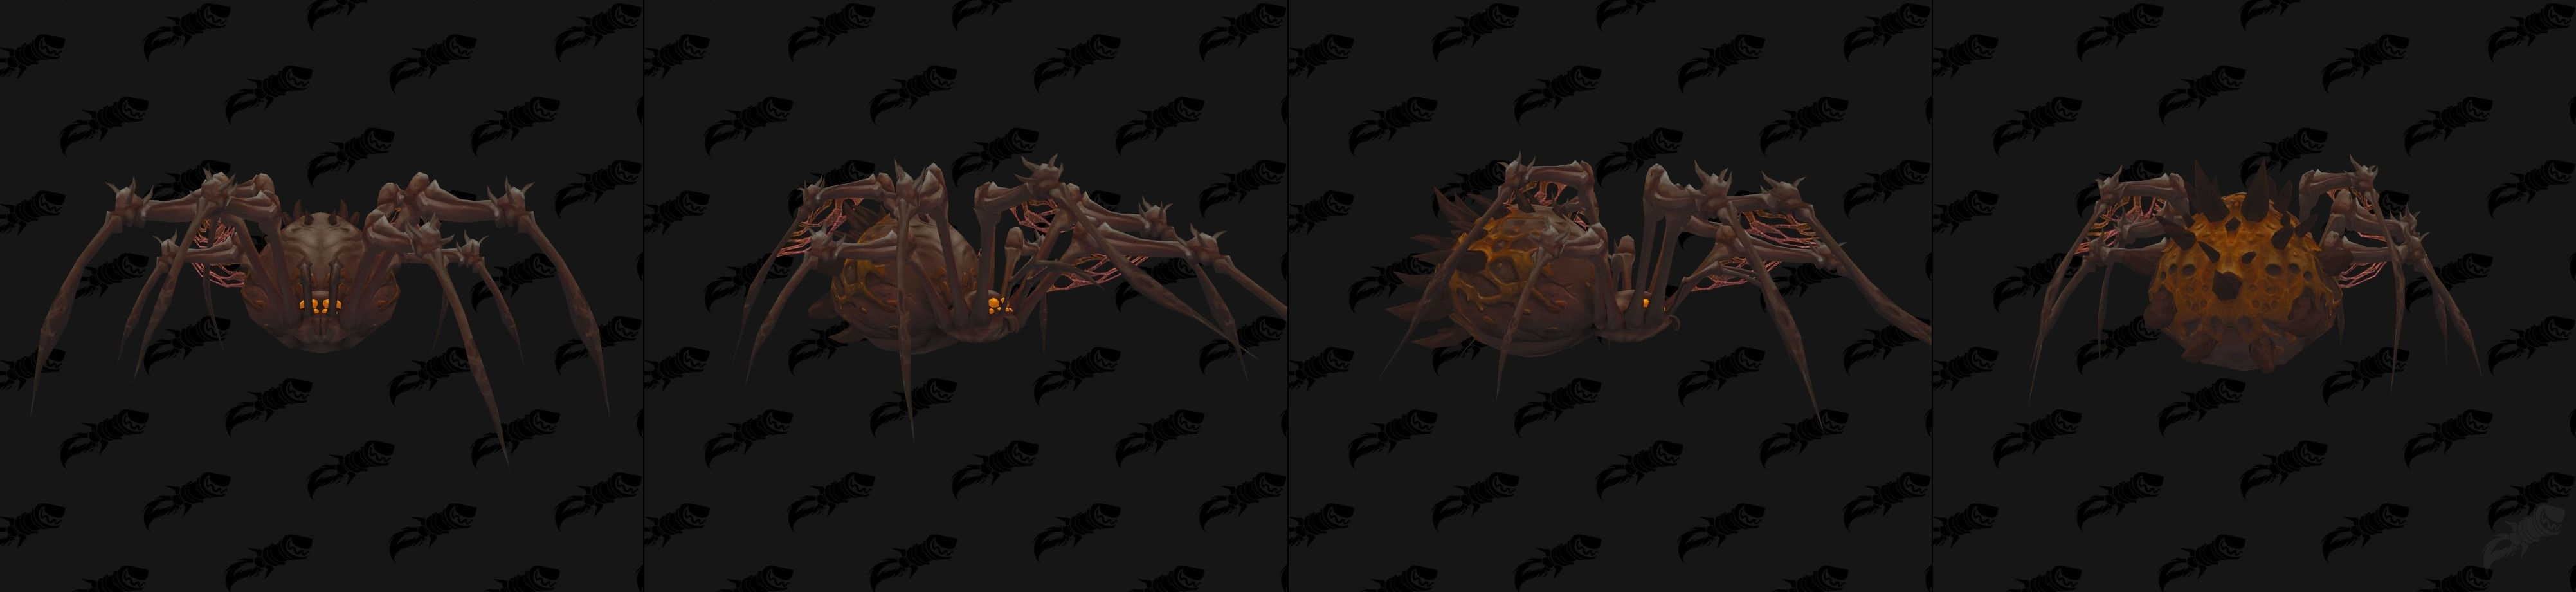 Updated Creature Models in the Battle for Azeroth Pre